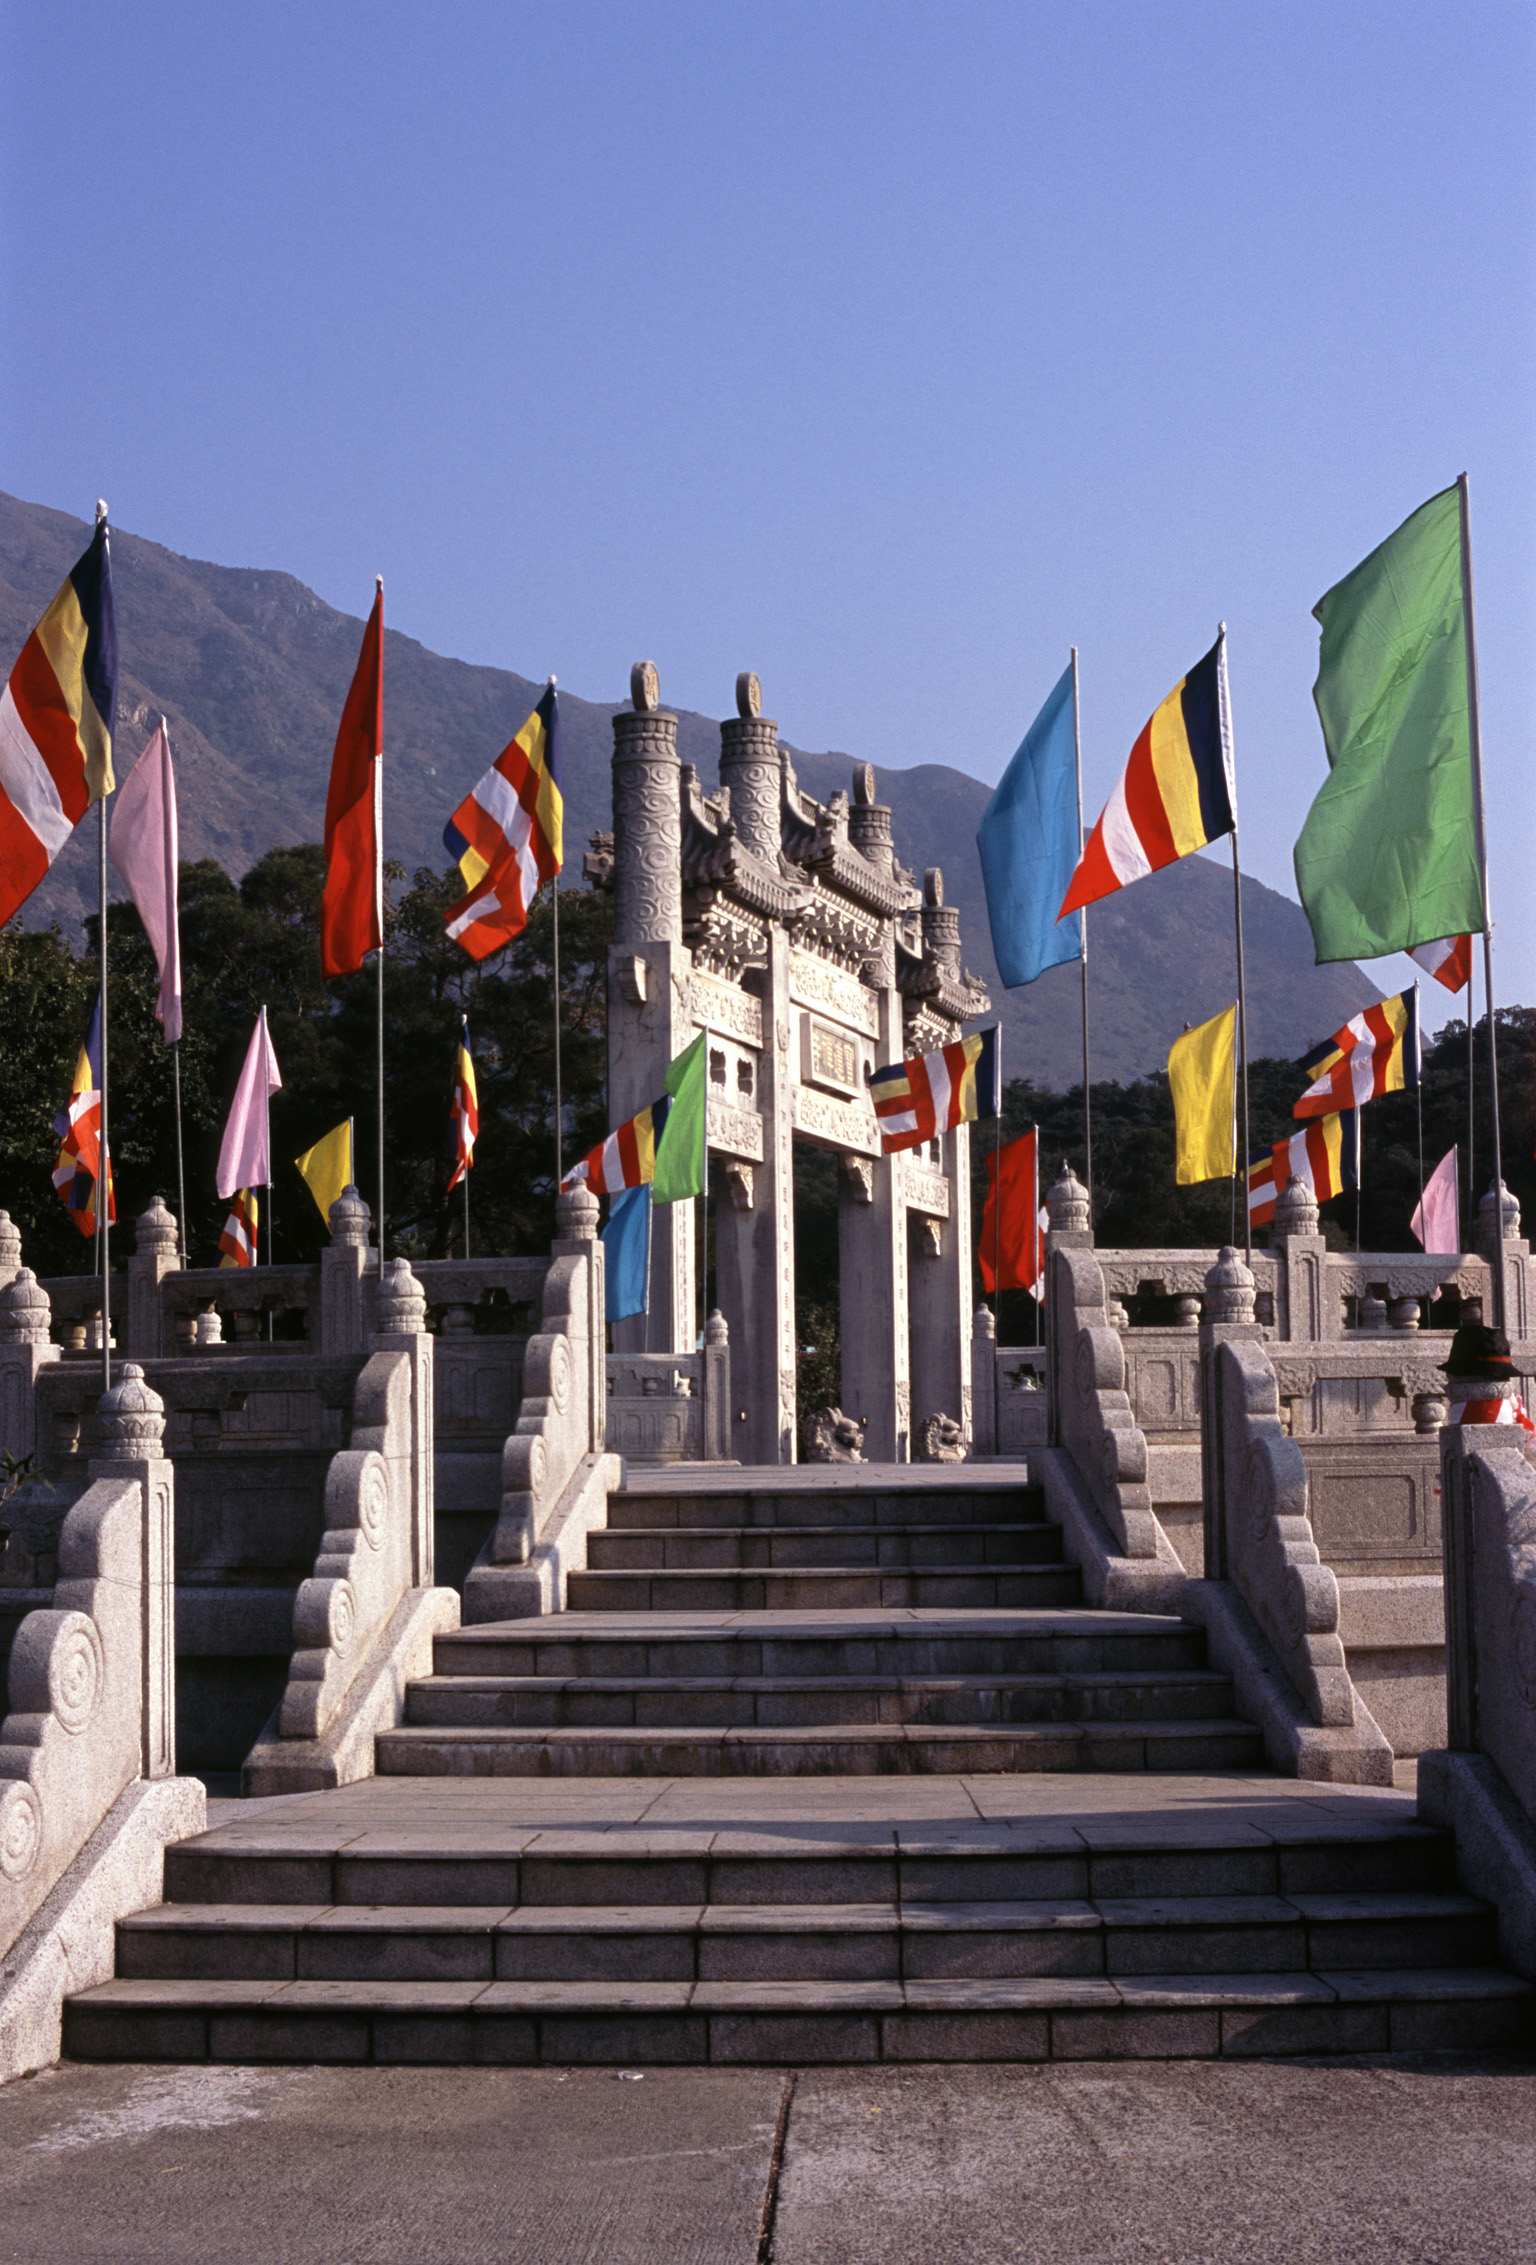 Various Flags on Poles Along the Vintage Pathway of Famous Buddhist Temple in China.